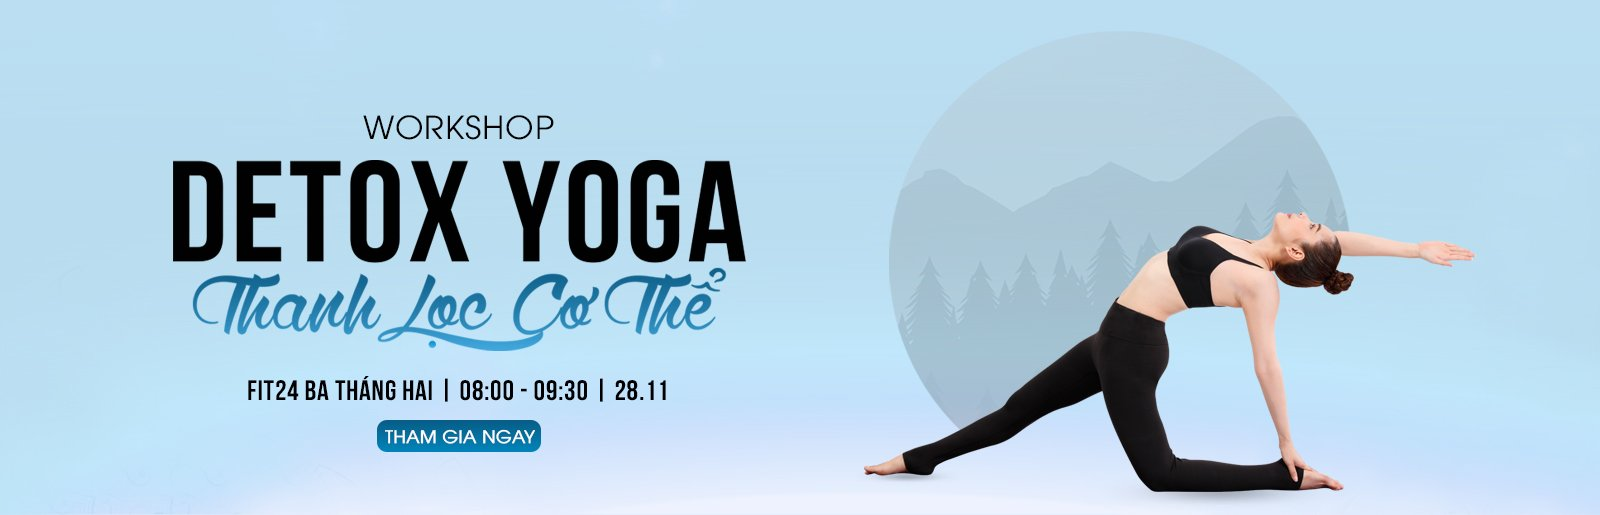 workshop Yoga Detox2